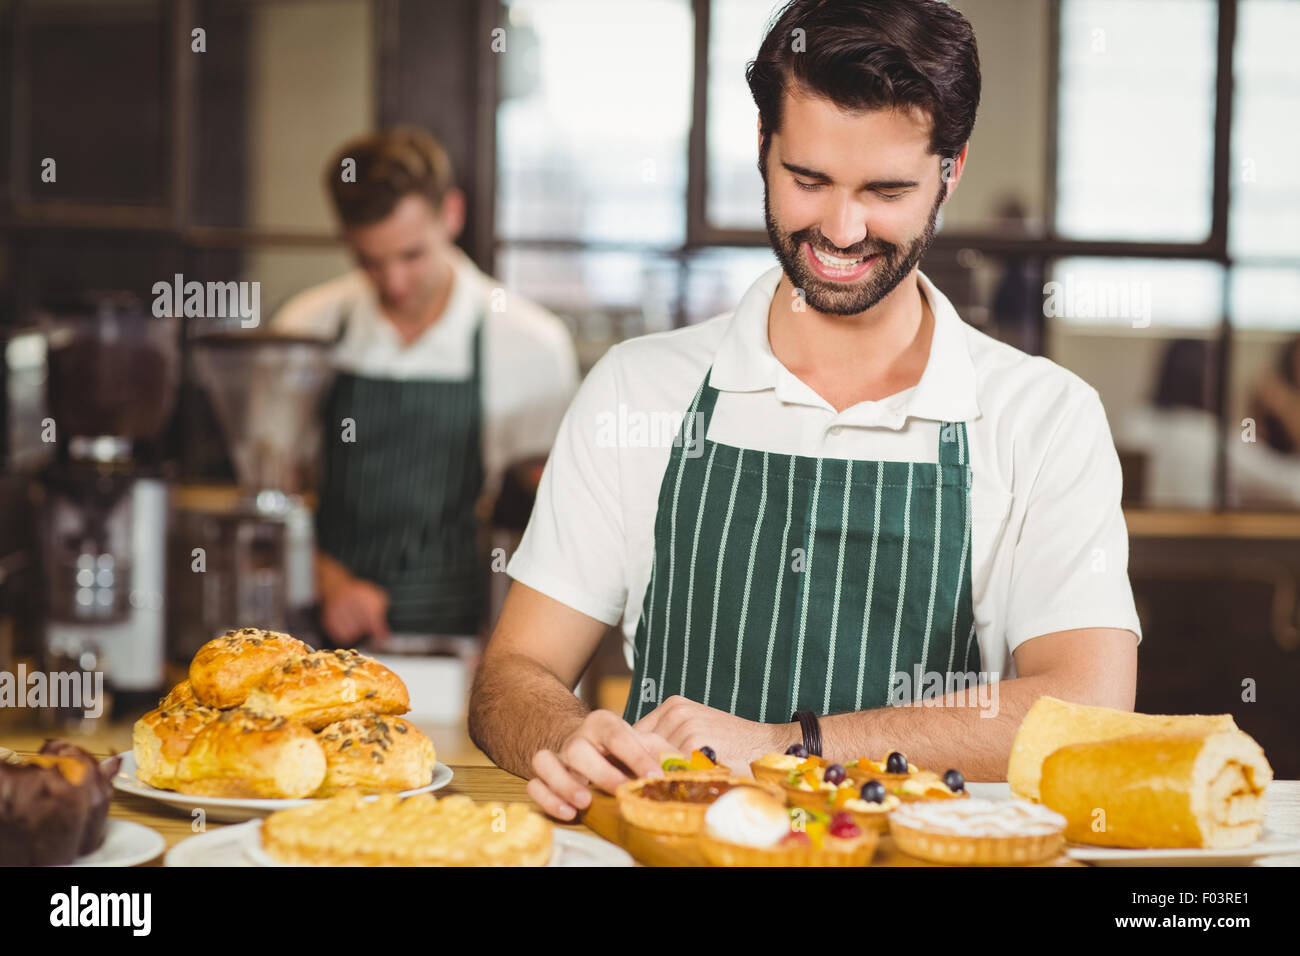 Smiling waiter tidying up the pastries - Stock Image